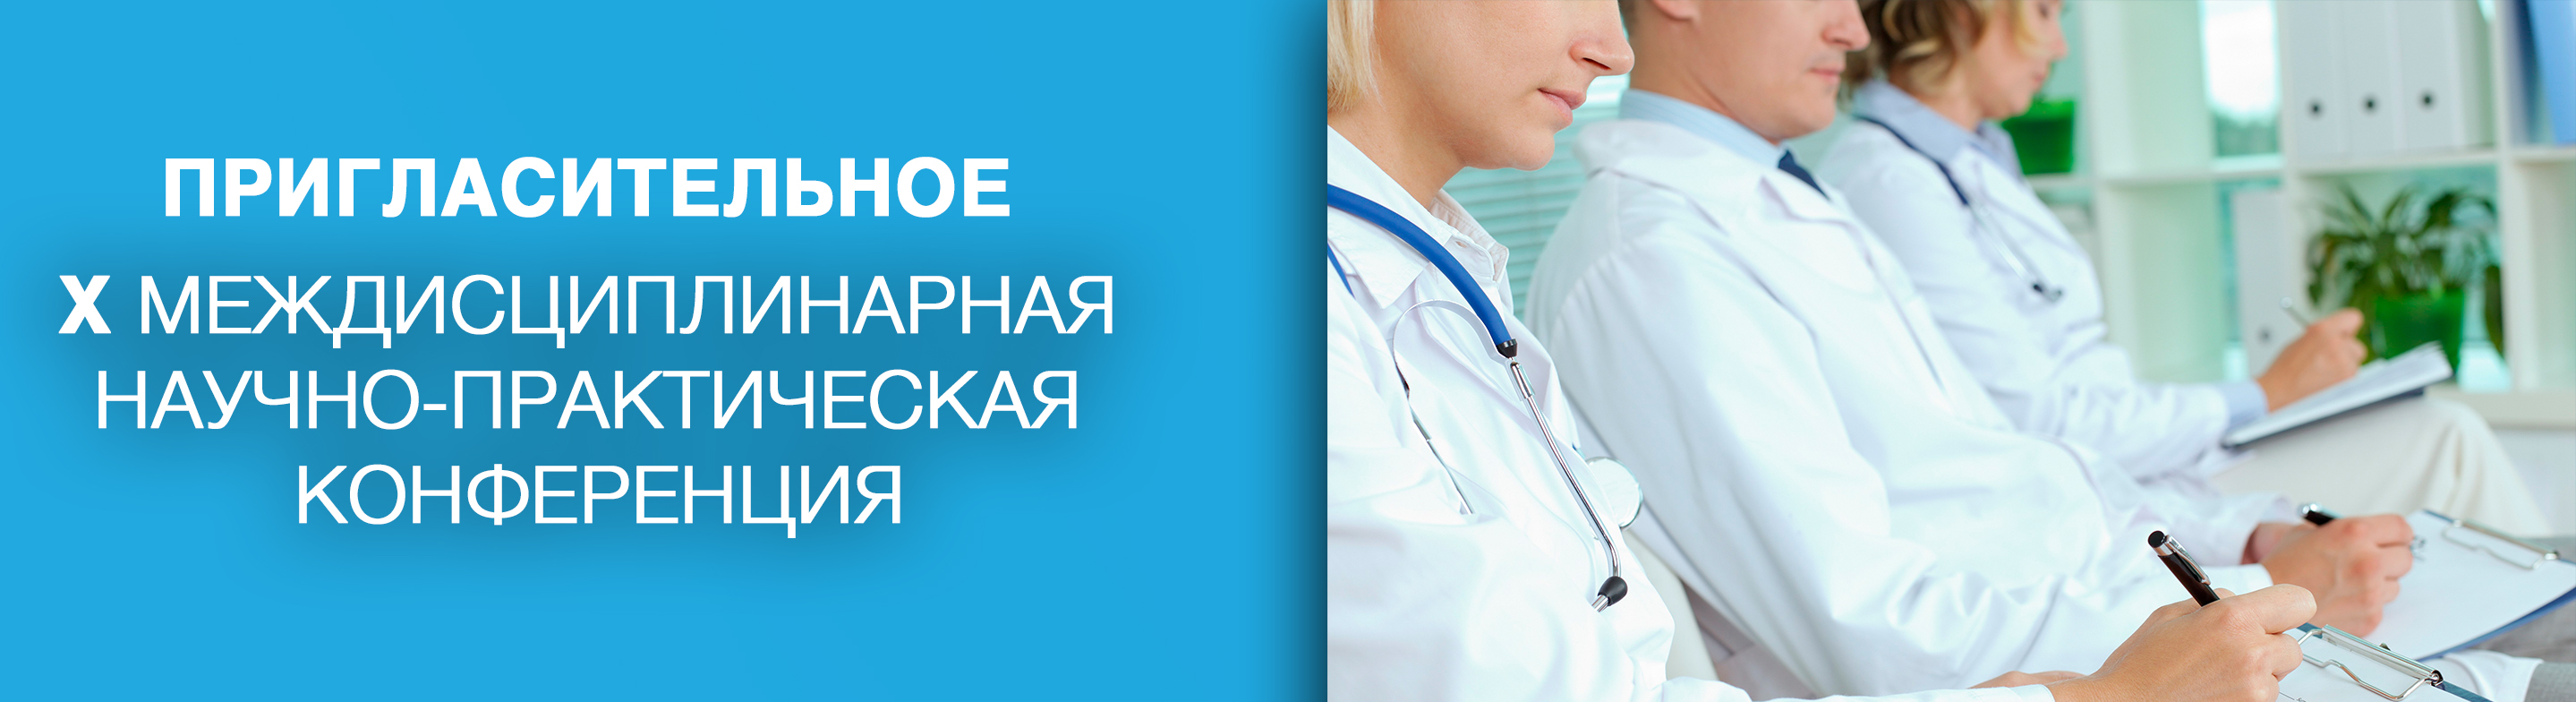 //nb-clinic.ru/wp-content/uploads/2018/03/nbX.jpg